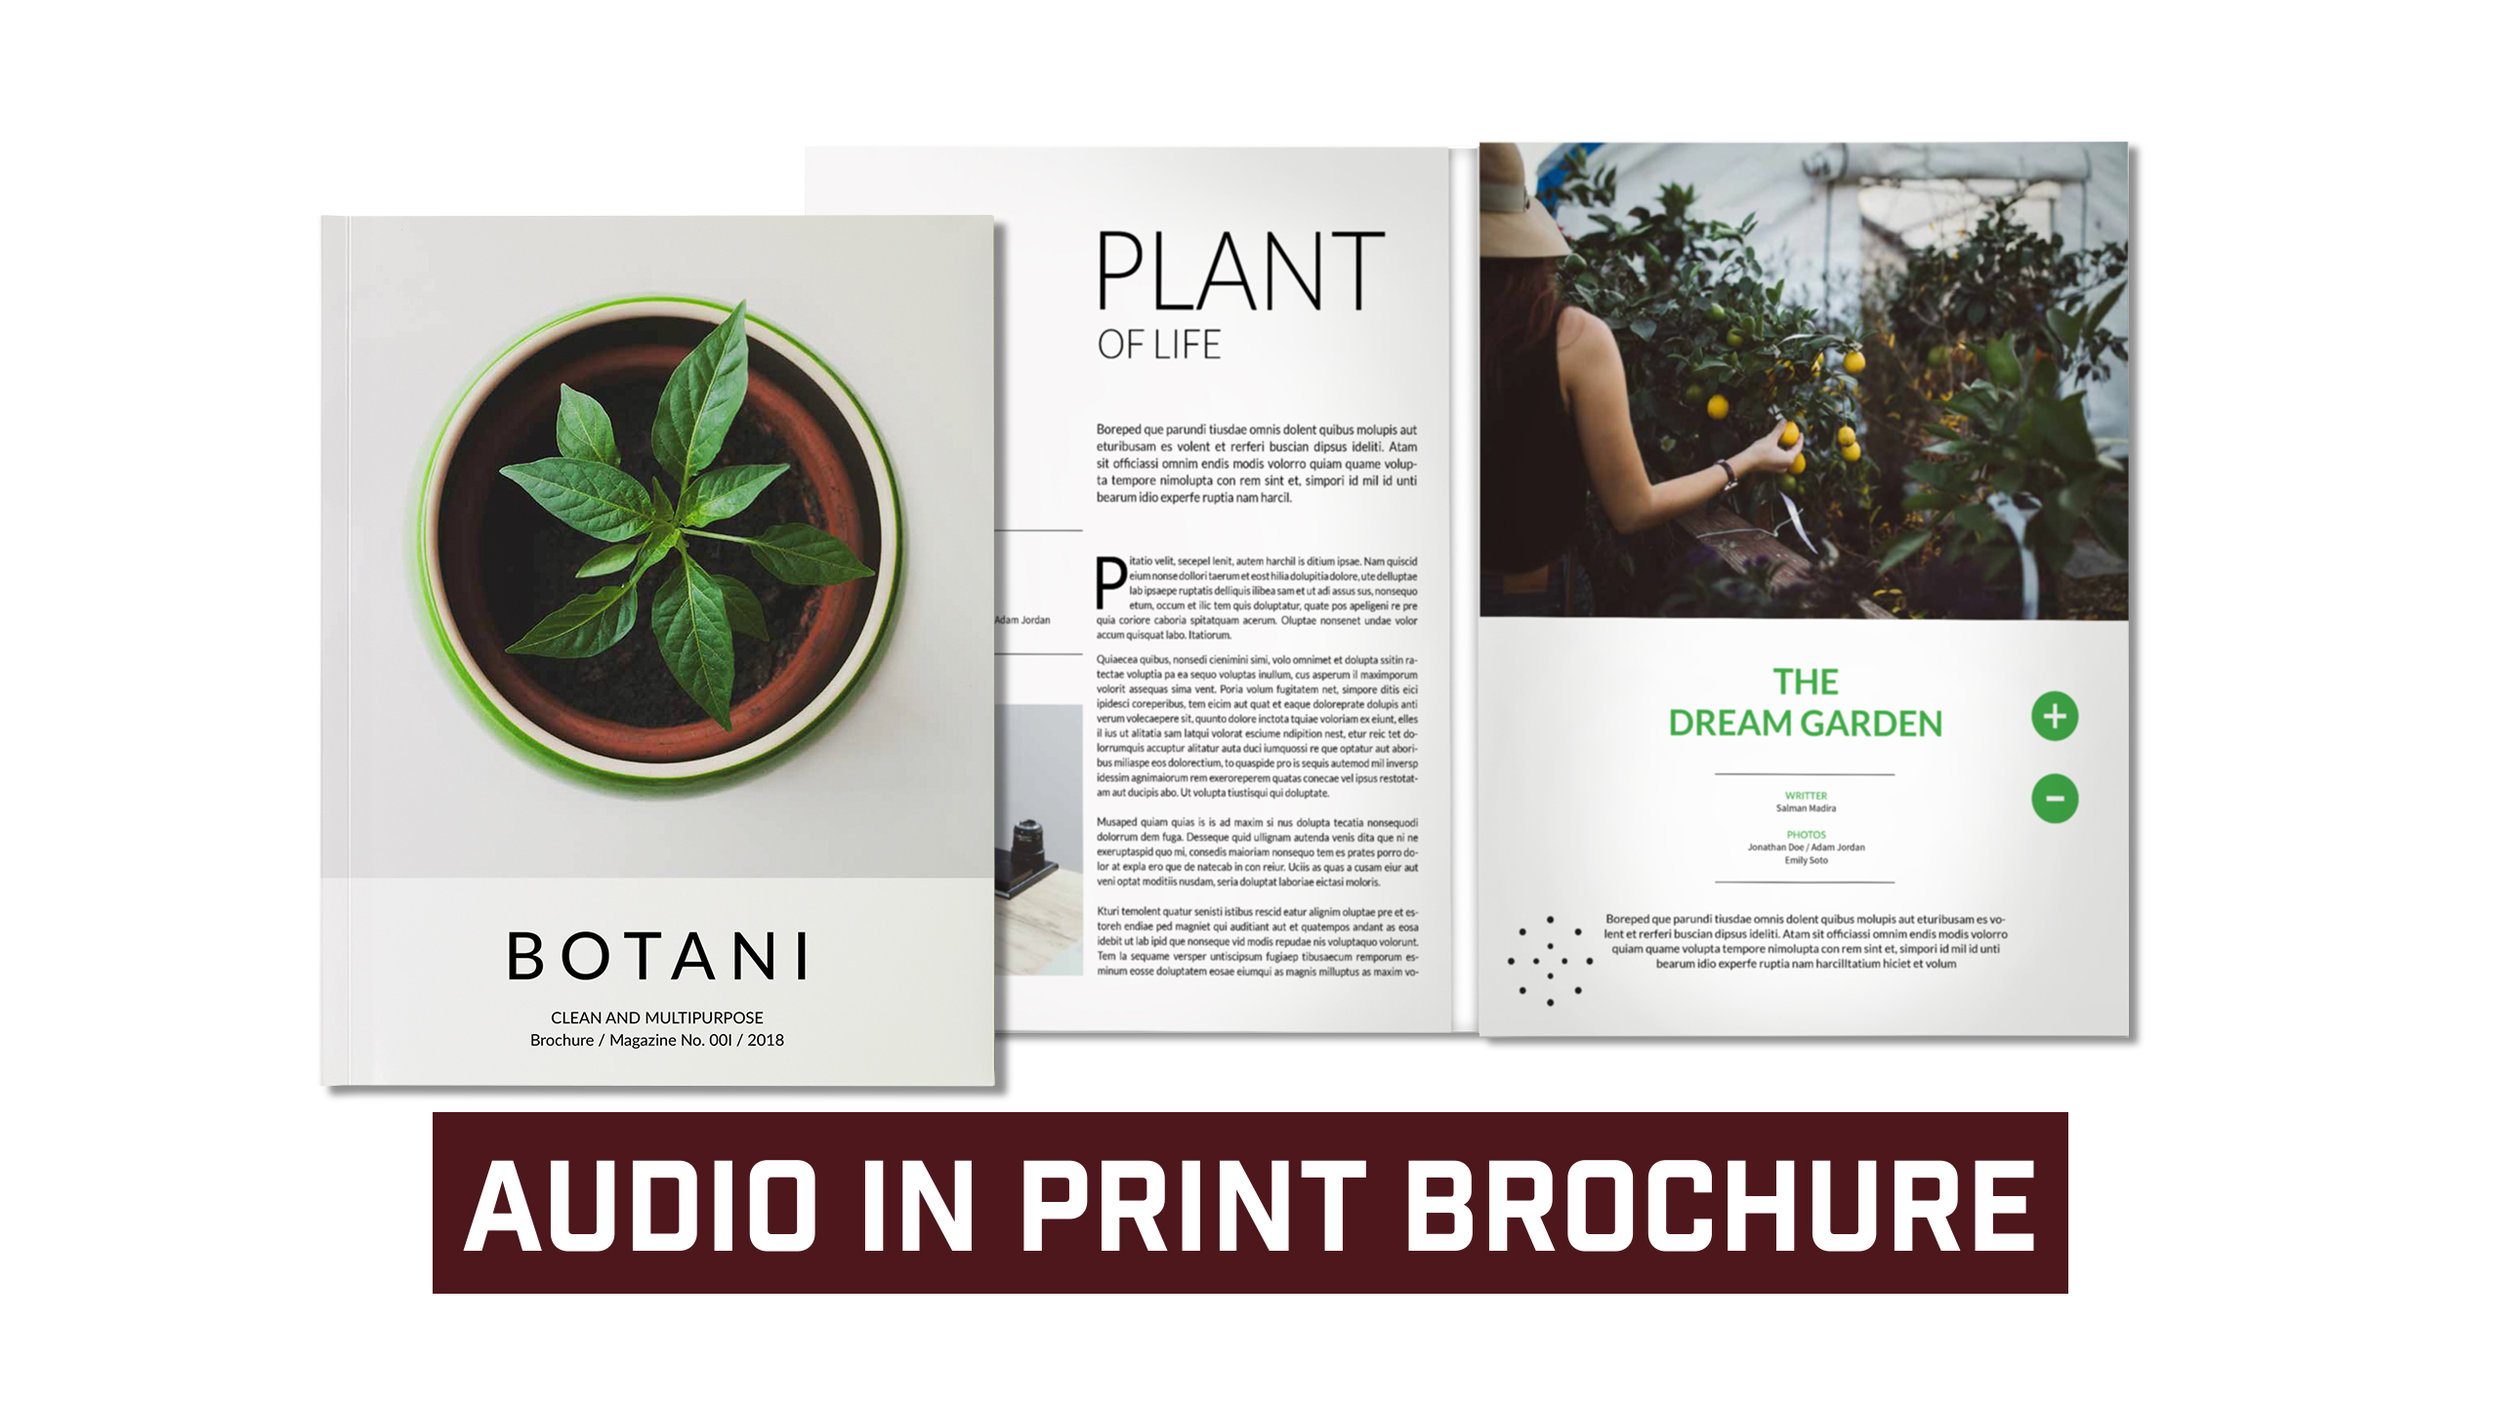 Audio In Print Brochure Includes Built In Speaker and Volume Control